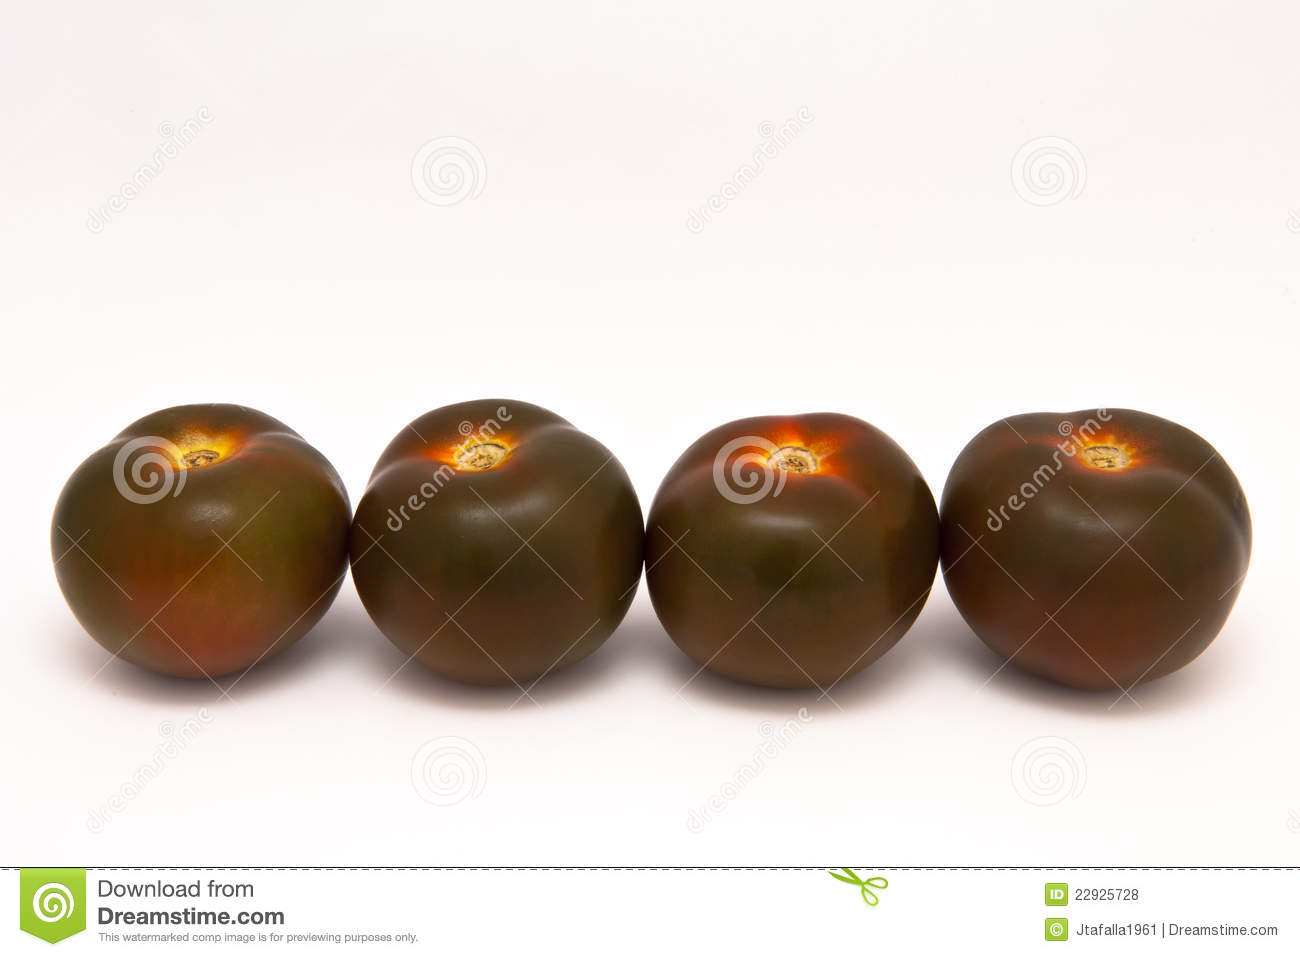 Black Tomatoes Royalty Free Stock Photos - Image: 22925728